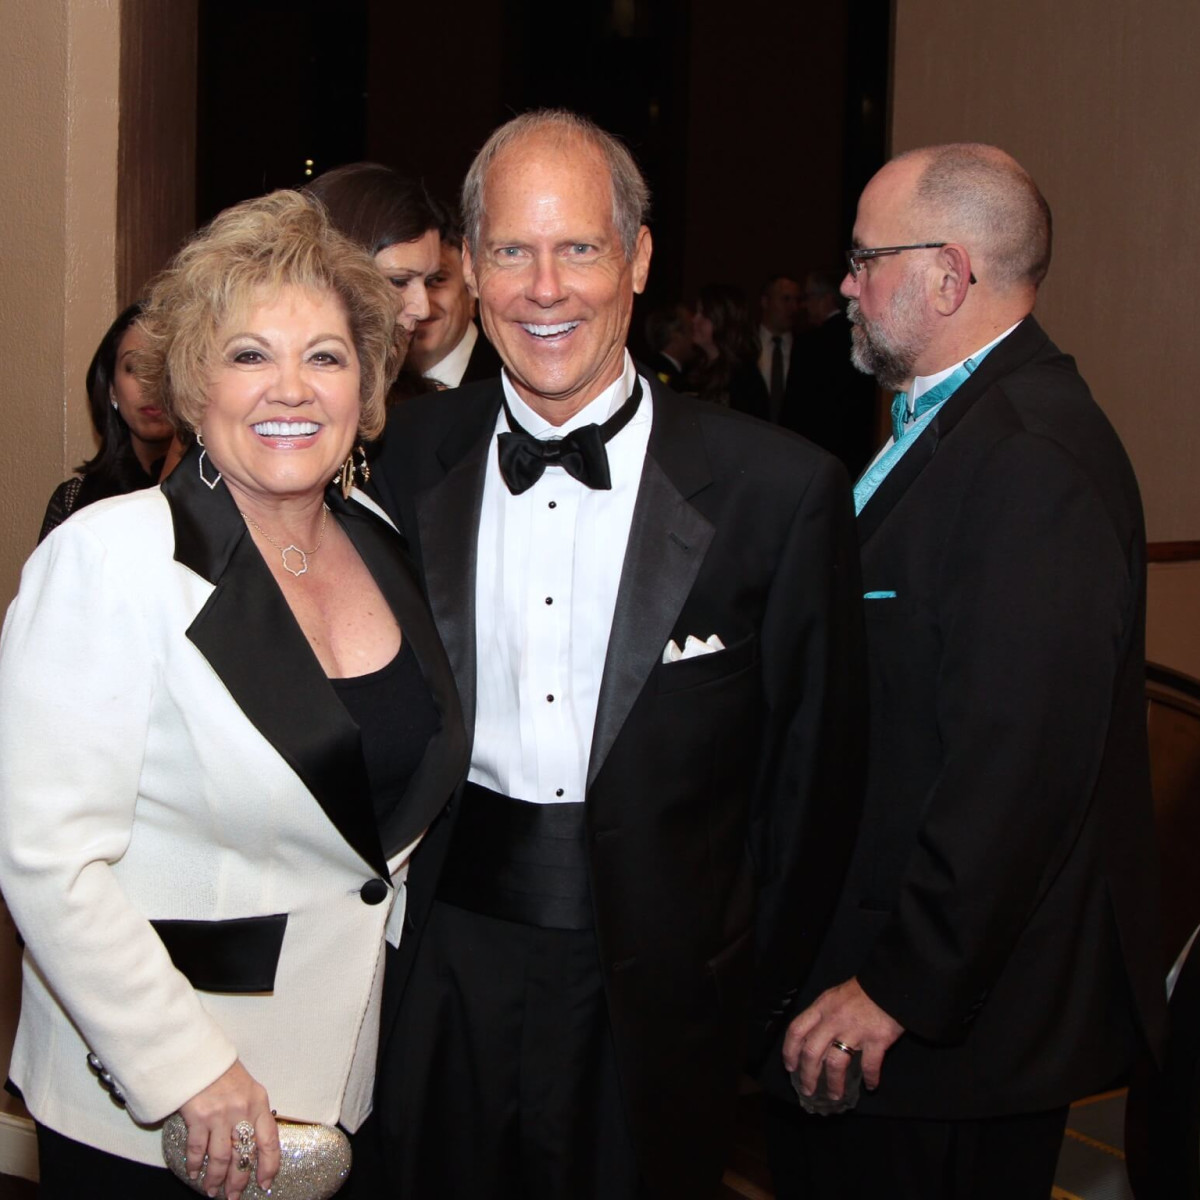 Houston Children's Charity 20th anniversary Edna Meyer-Nelson, Bill Whitehead